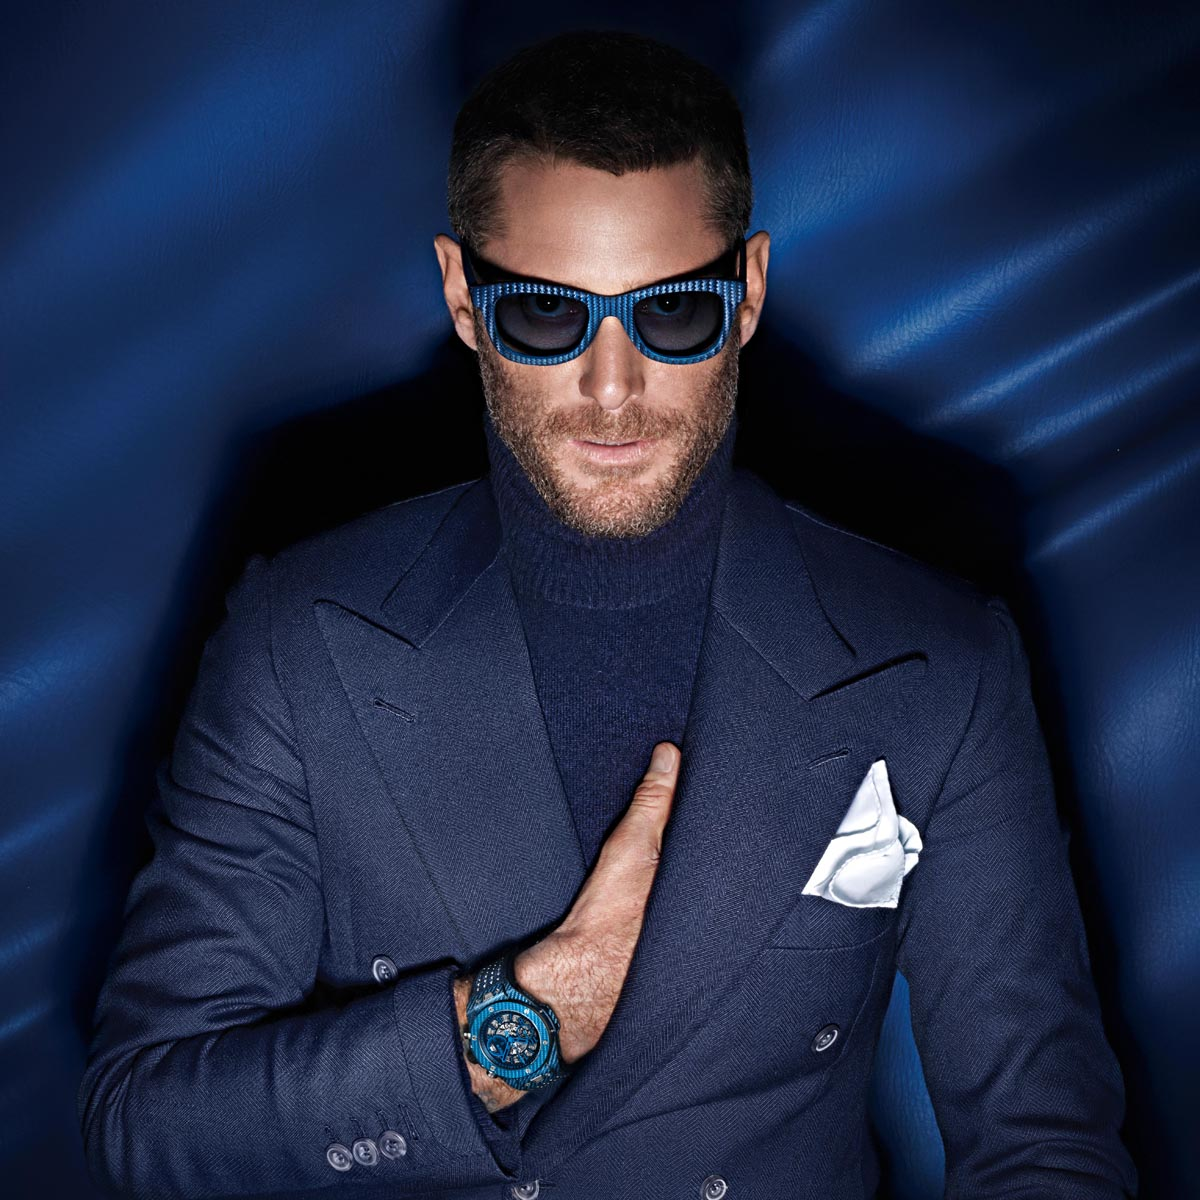 La Cote des Montres : Photo - Hublot voit la vie en bleu à Paris - Big Bang Unico Italia Independent